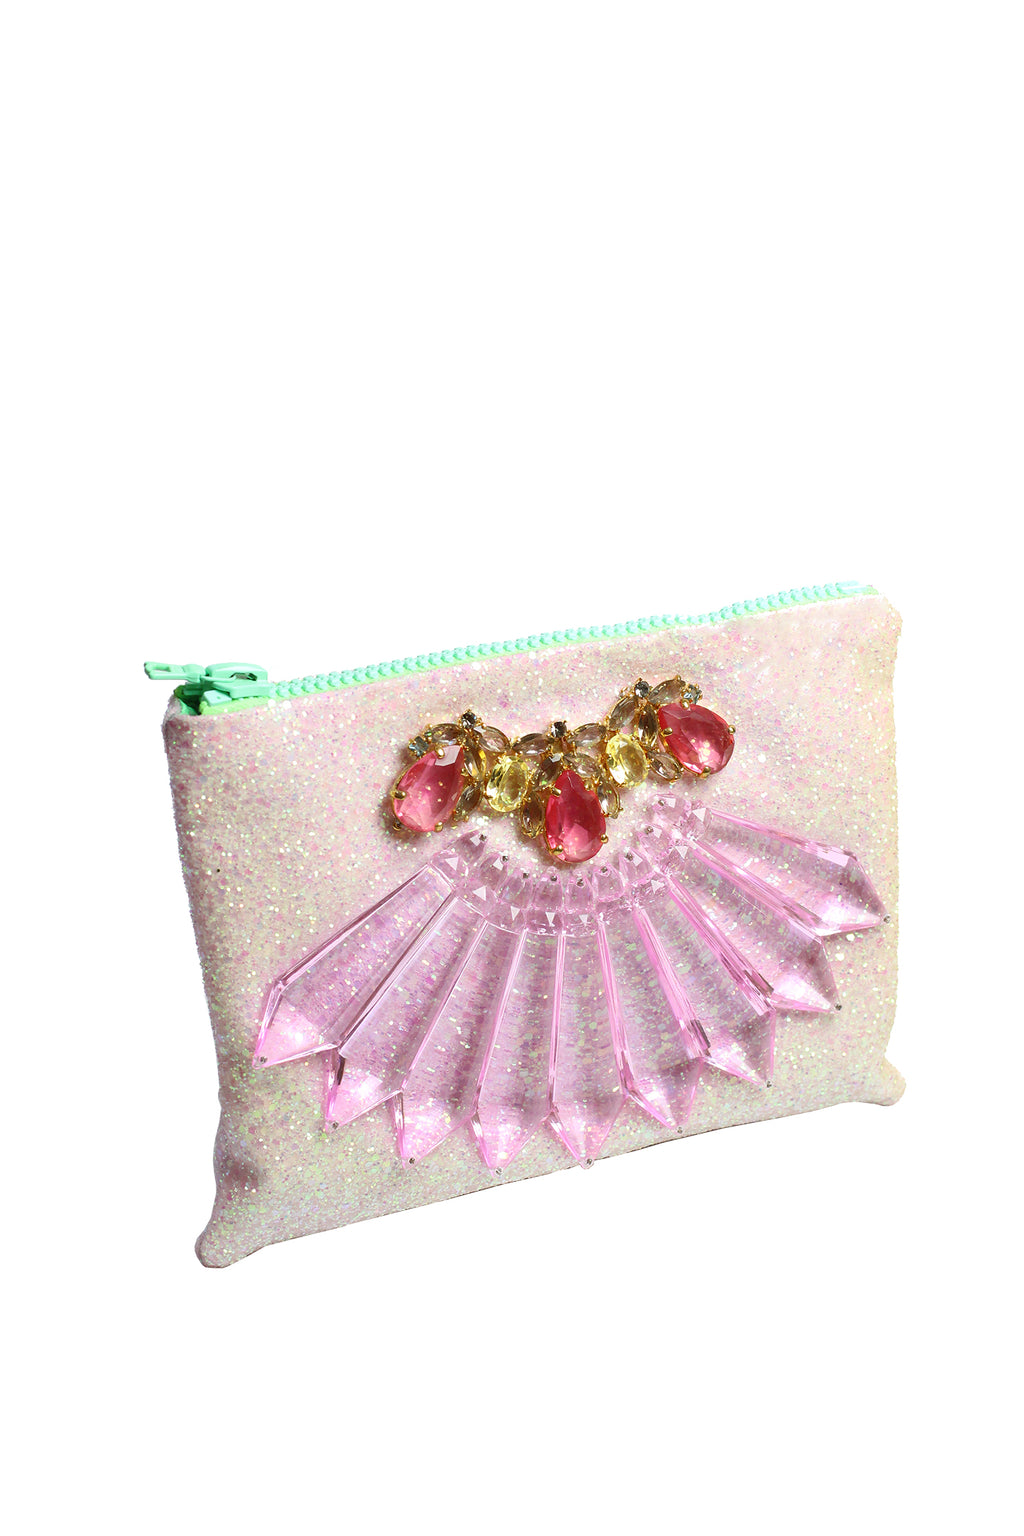 Mawi - Single glitter clutch with perspec spikes teardrop crystals